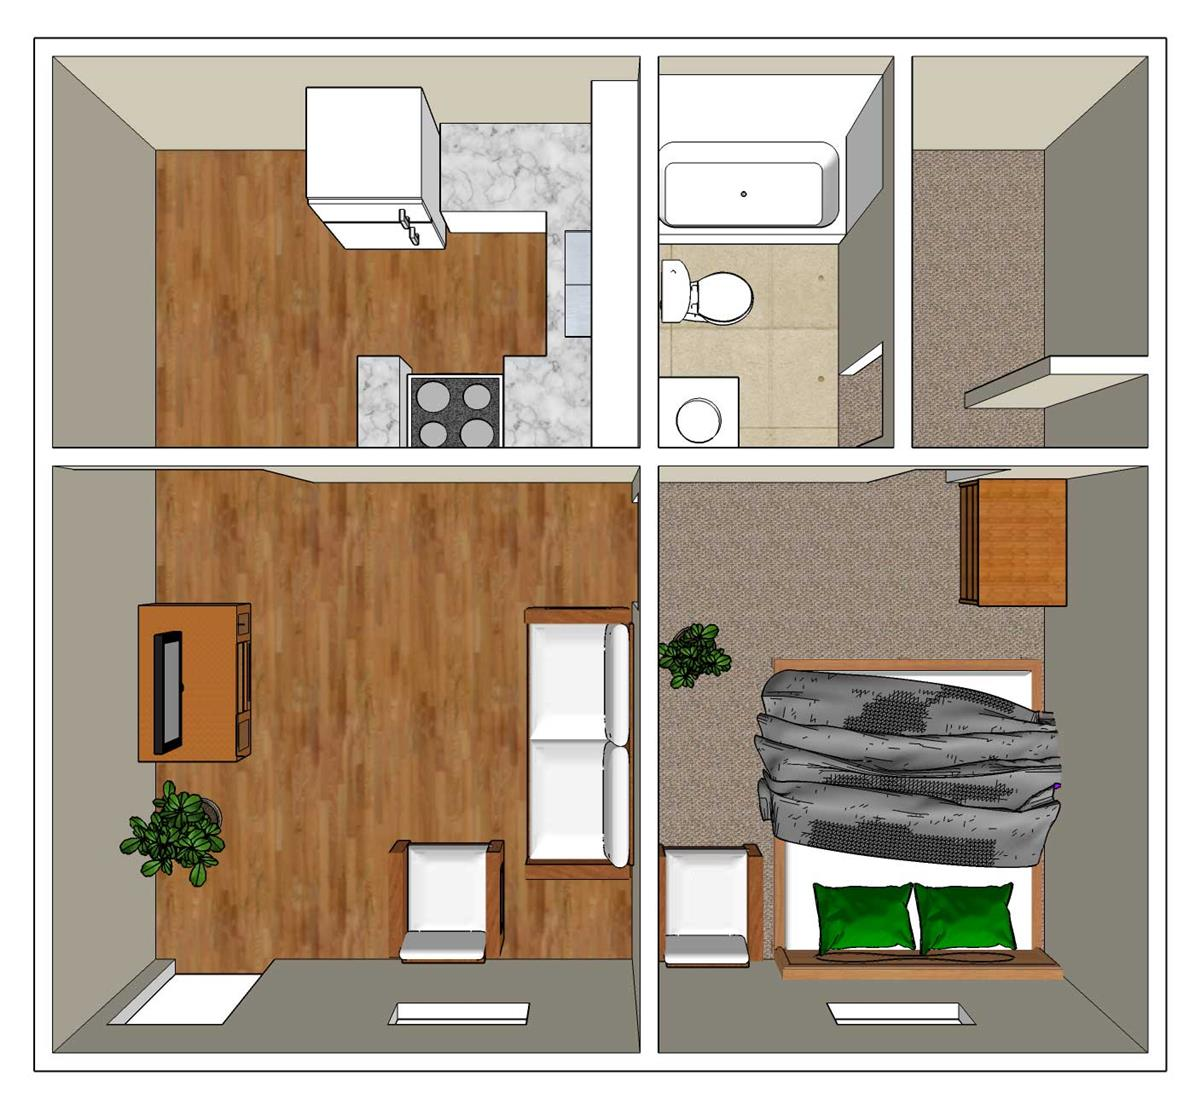 River pointe at the summit apartment in tuscaloosa al - One bedroom apartments in tuscaloosa ...